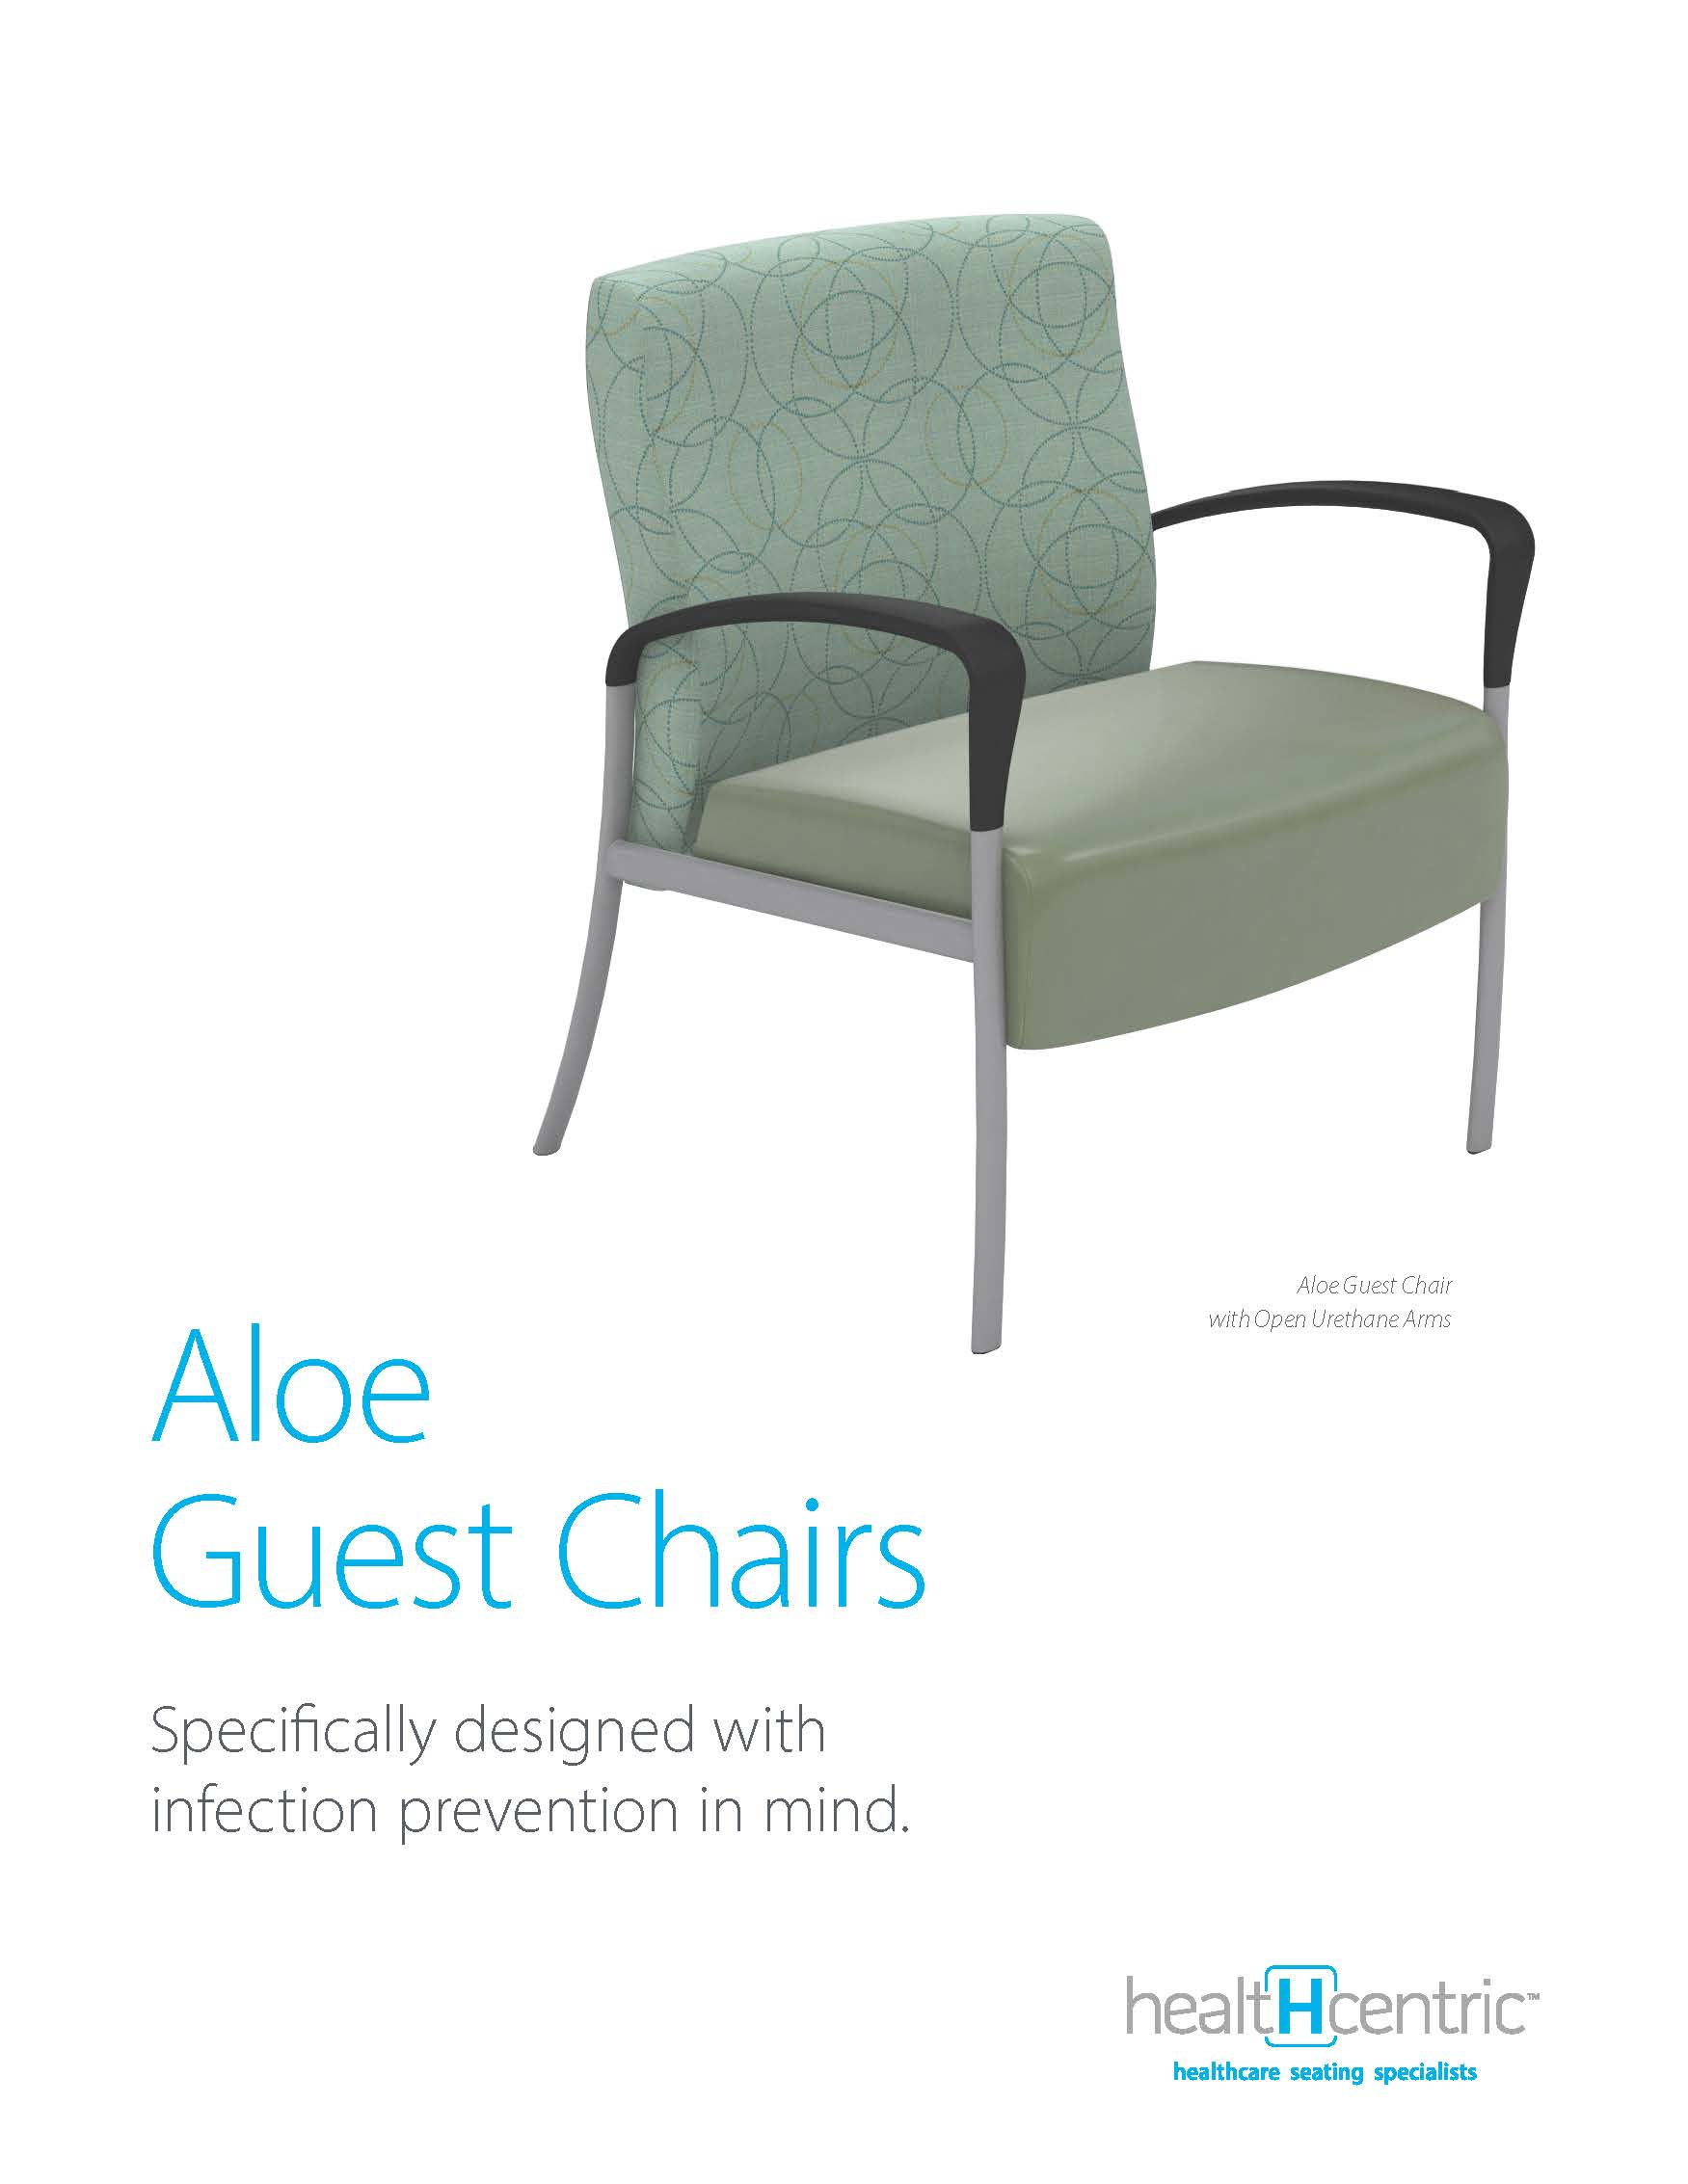 Aloe Guest Chairs